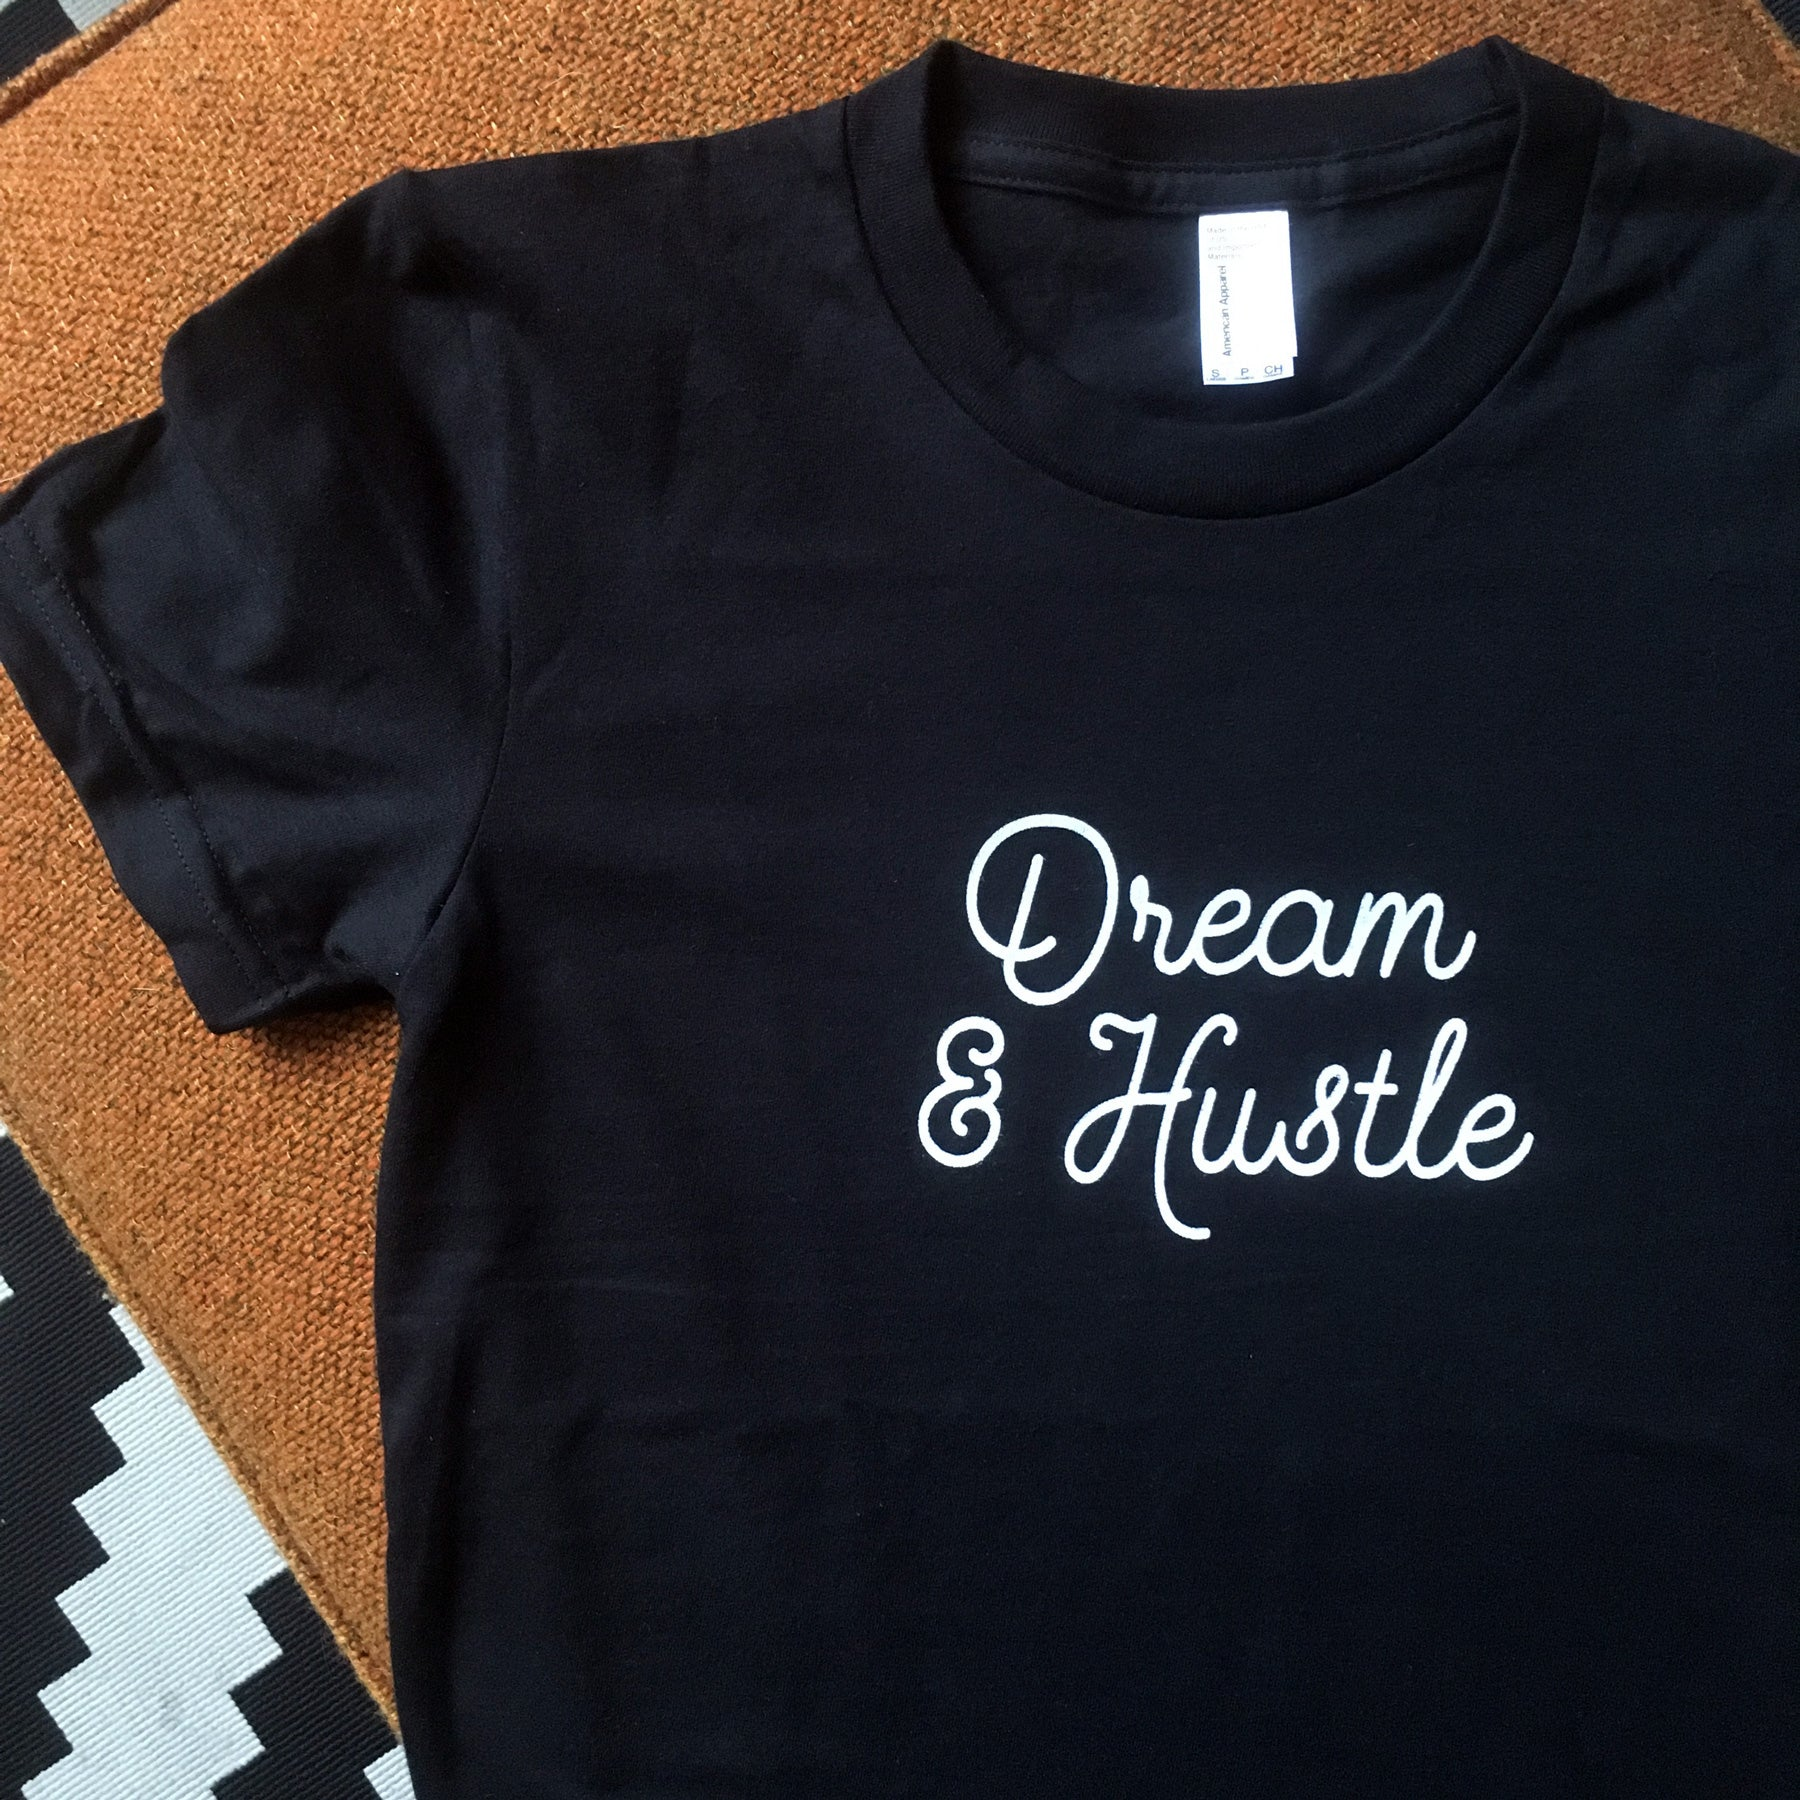 Dream & Hustle Tees